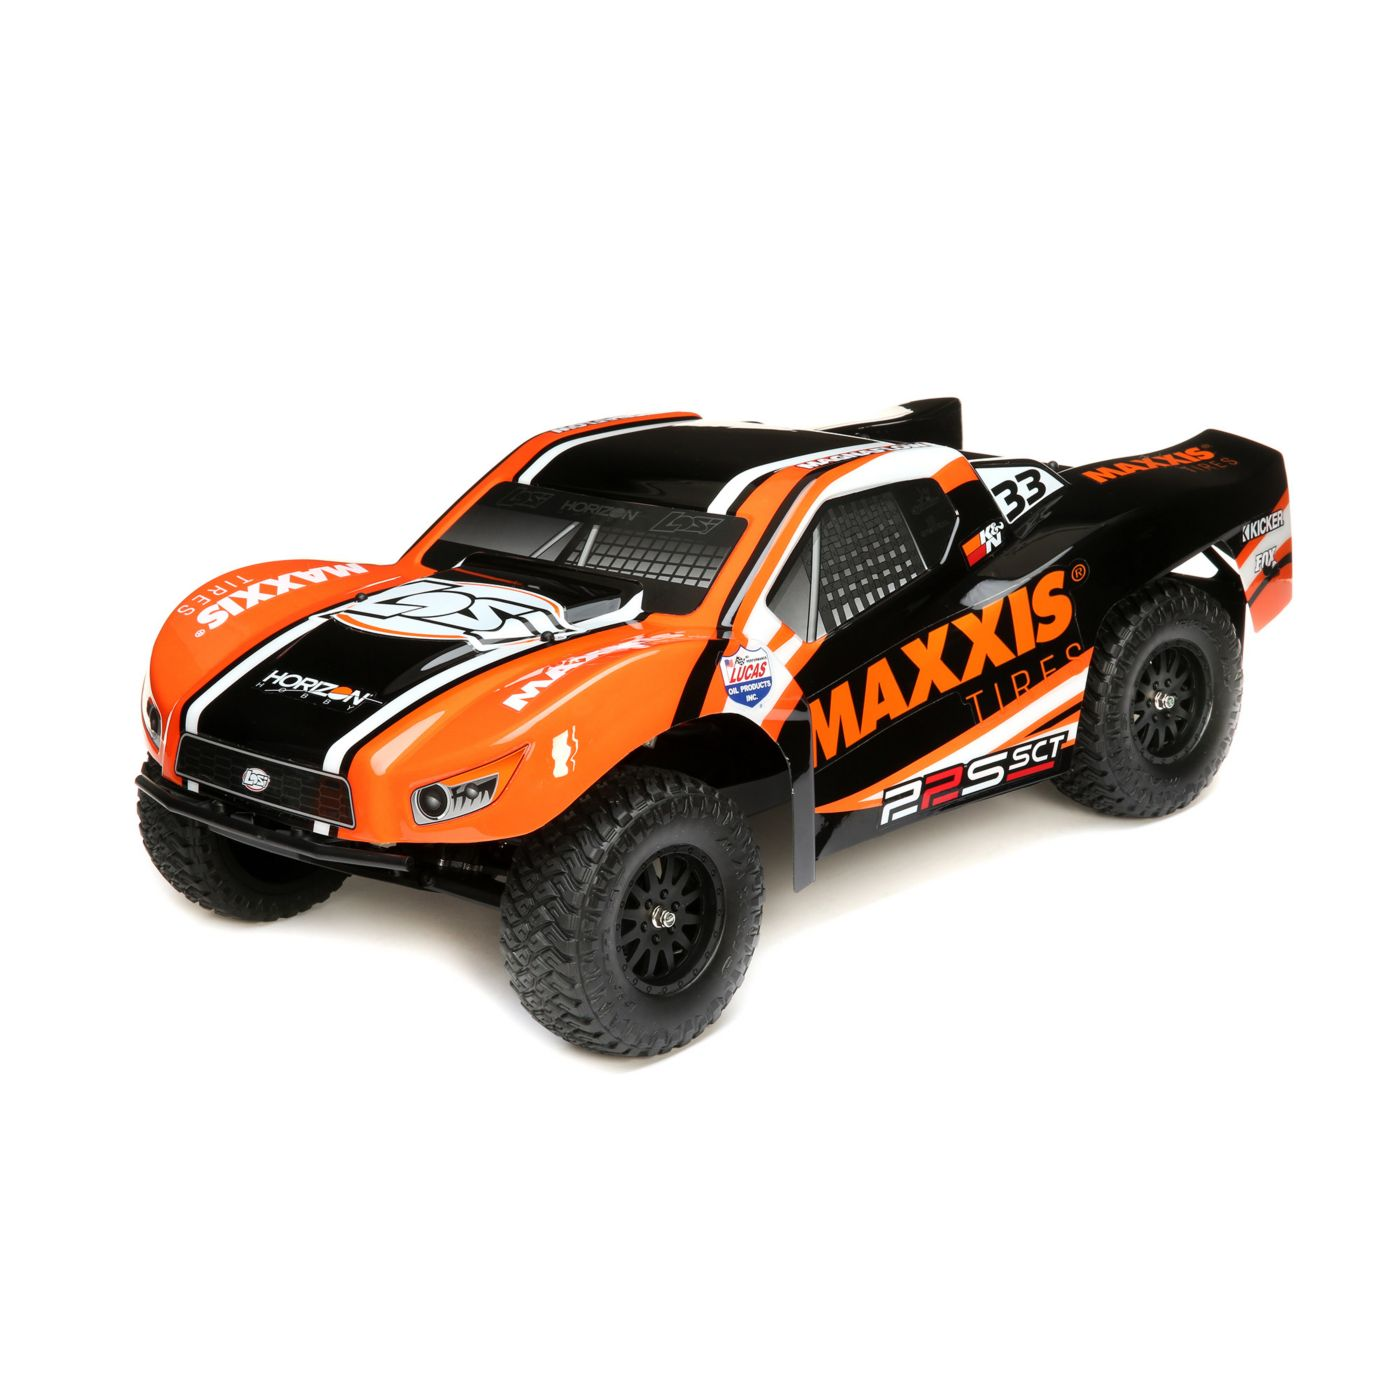 Losi 22S R/C Short Course Truck